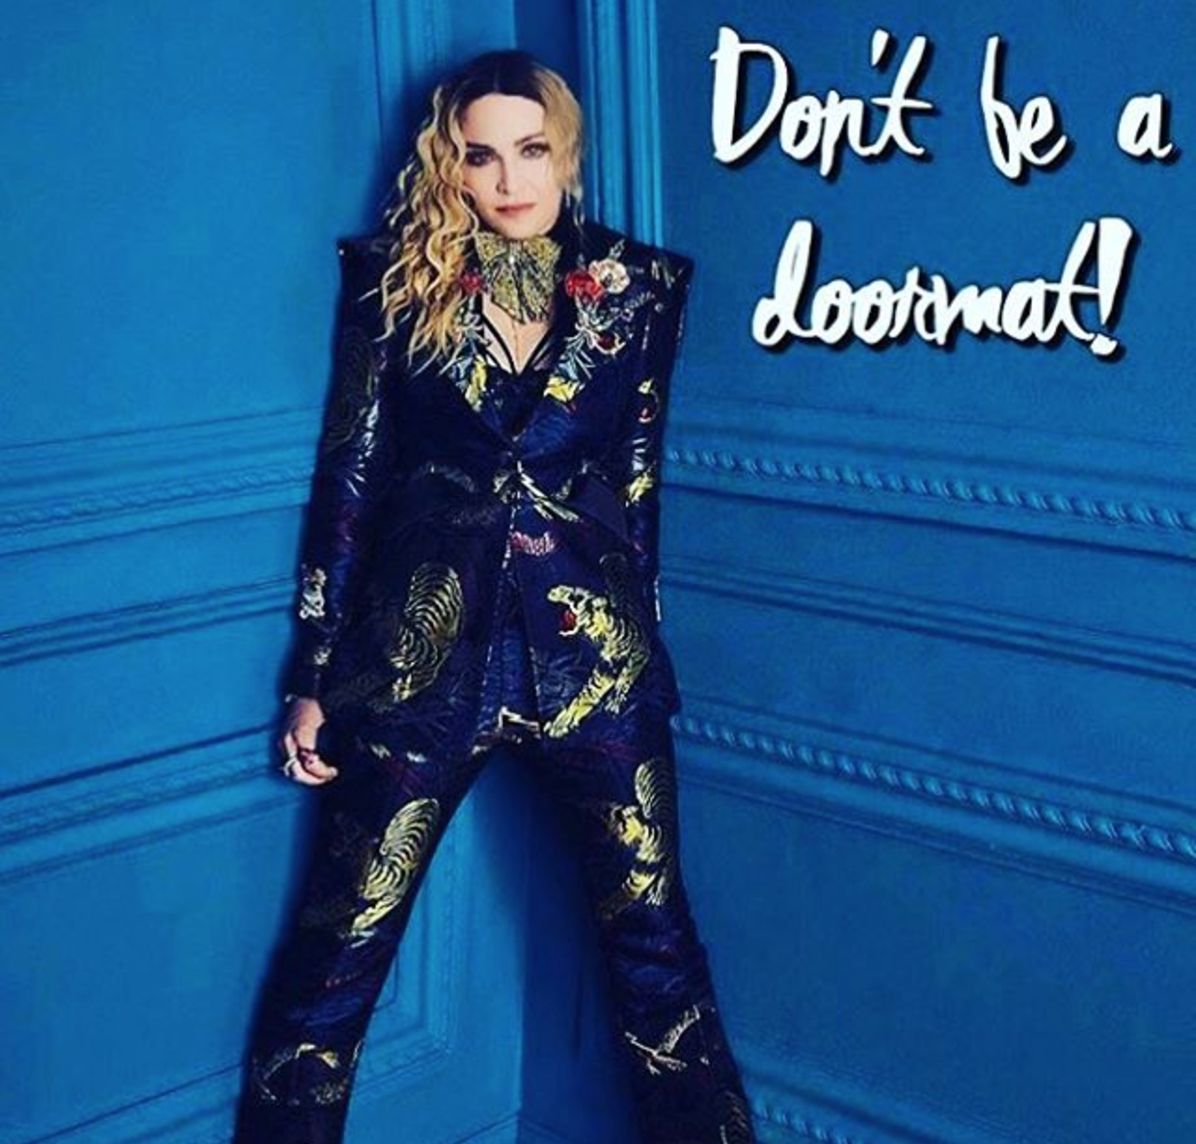 madonna don't be a doorman